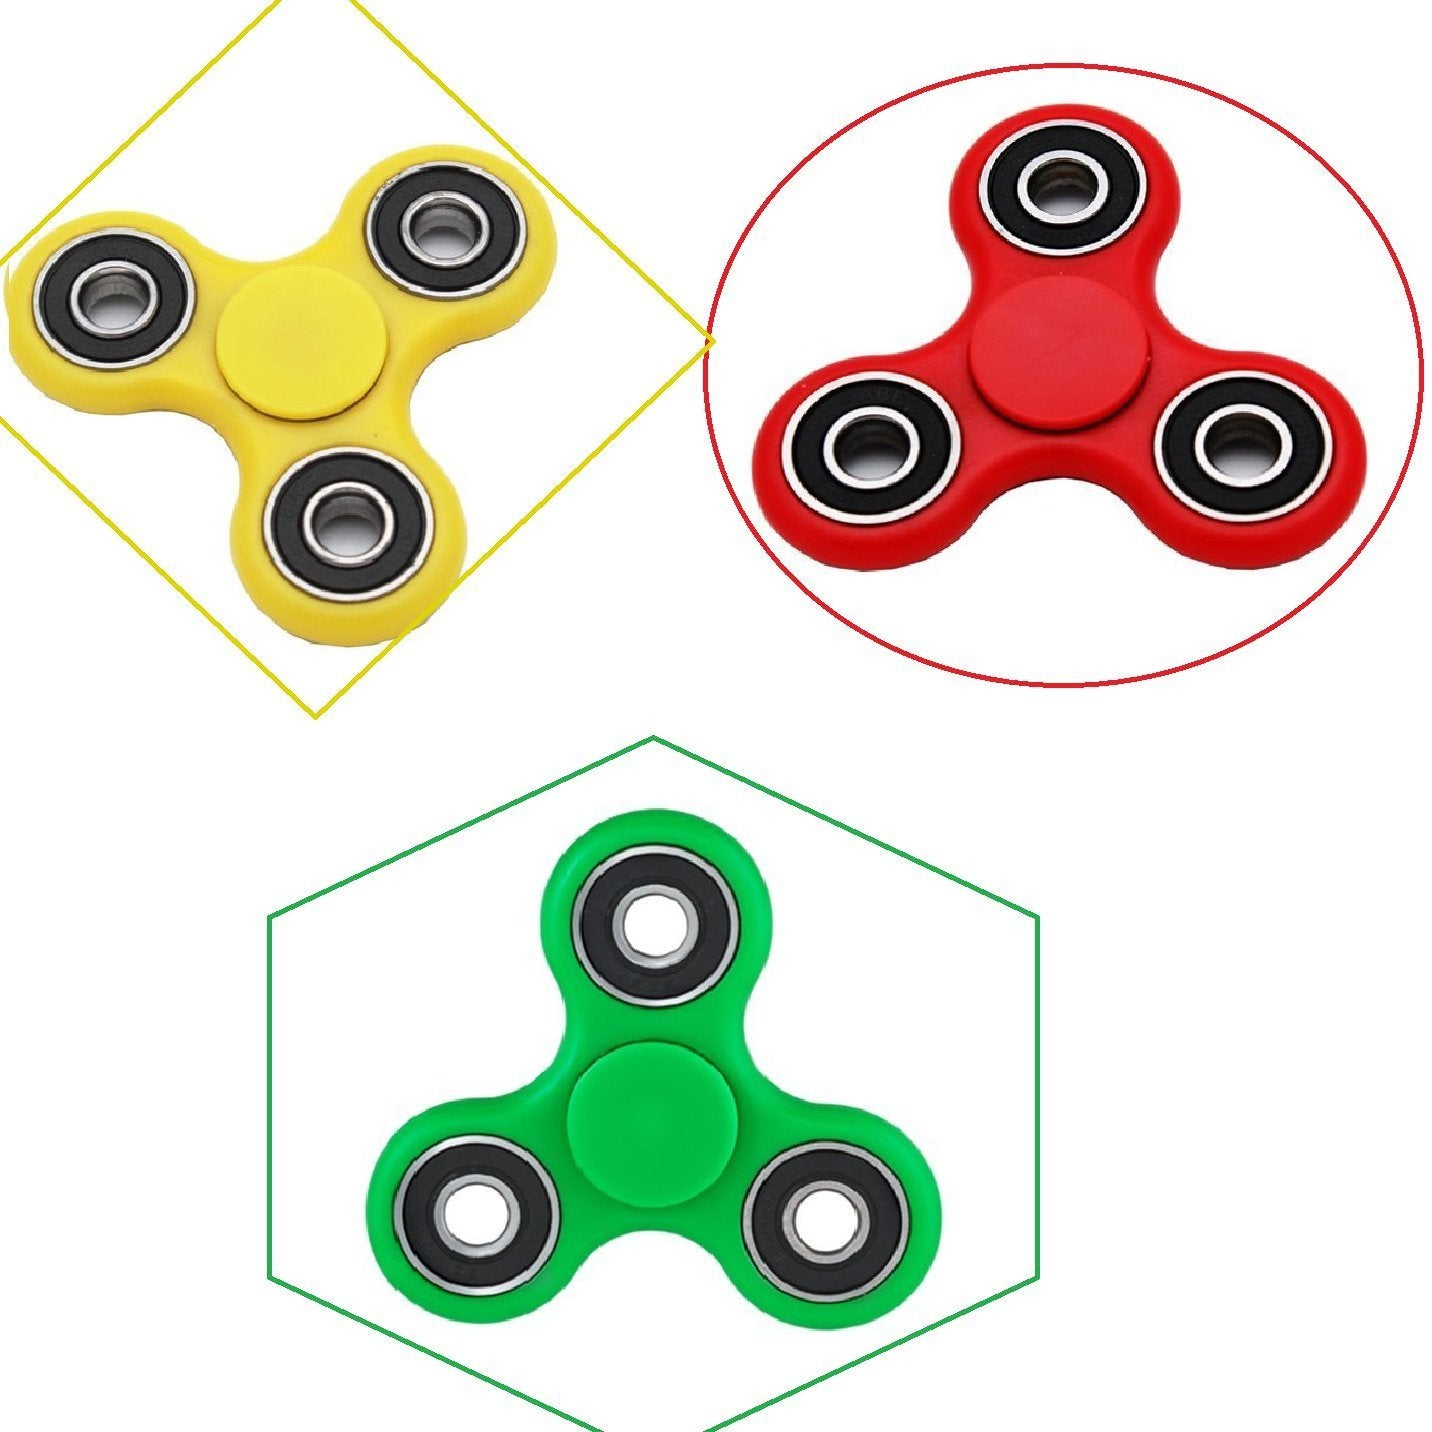 Fidget Spinner Super Set of 3 Spinners per Pack Yellow, Green and Red Stress Relief Relaxation Great Gift Idea for Autism, ADD, ADHD etc.